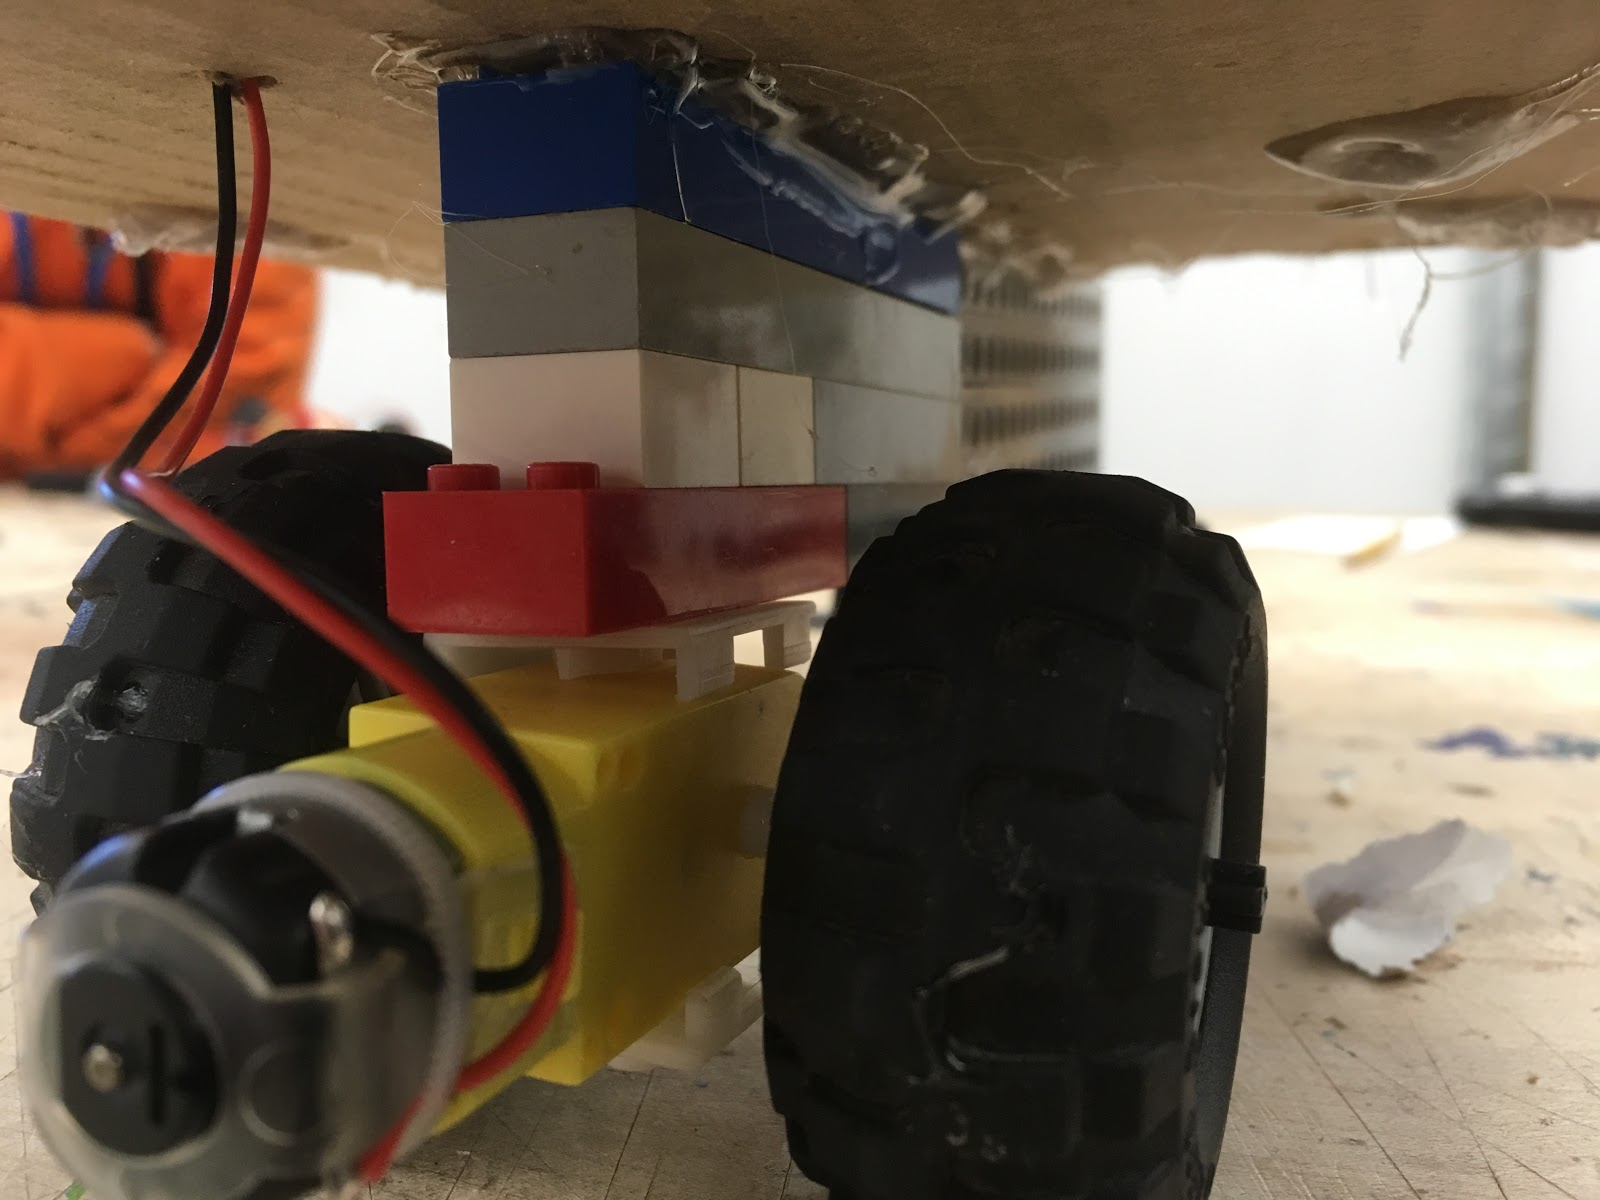 motor attached to LEGOs